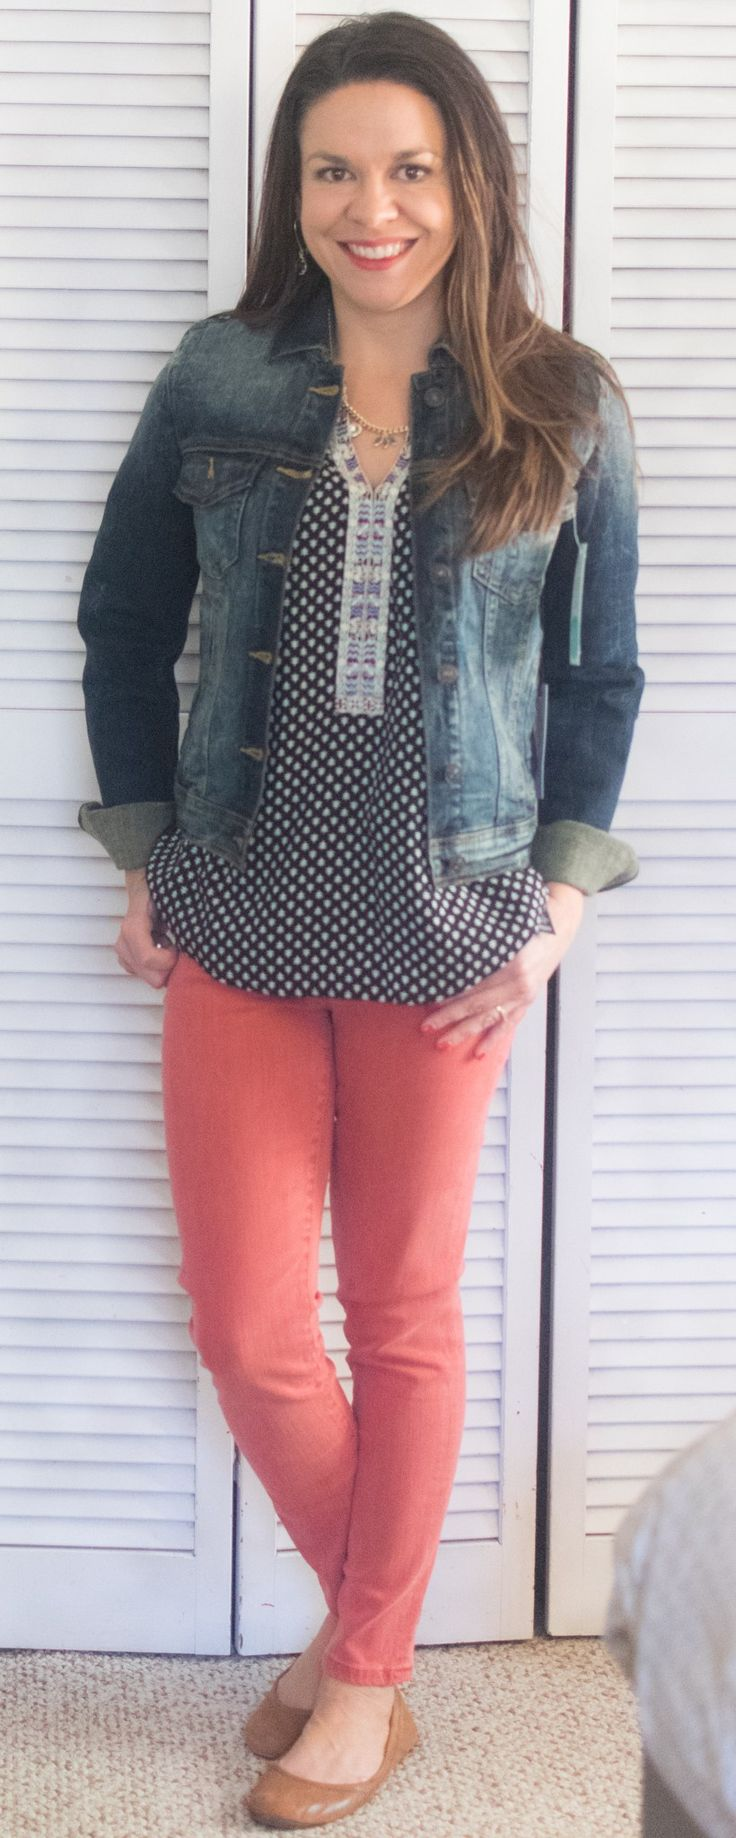 Liverpool Adele Skinny Jean Just USA Anjuli Dark Wash Denim Jacket Skies are Blue Brecken Mixed Material Top Stitch Fix Review March 2017